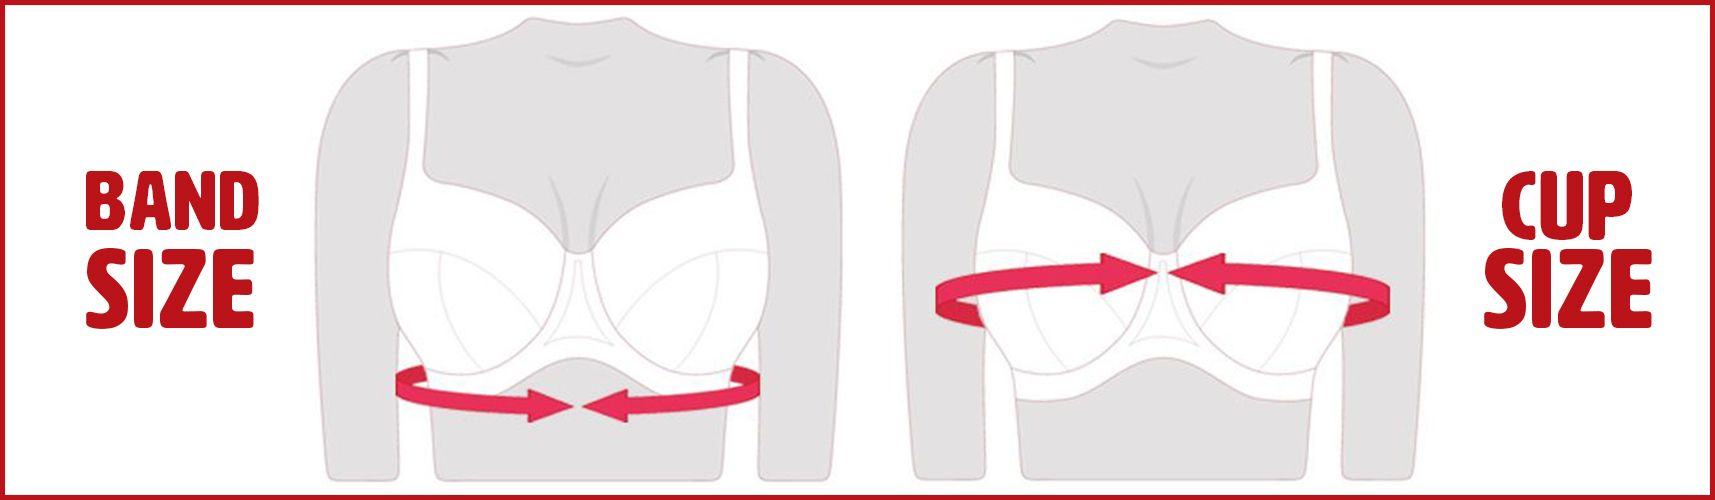 measure bra size at home